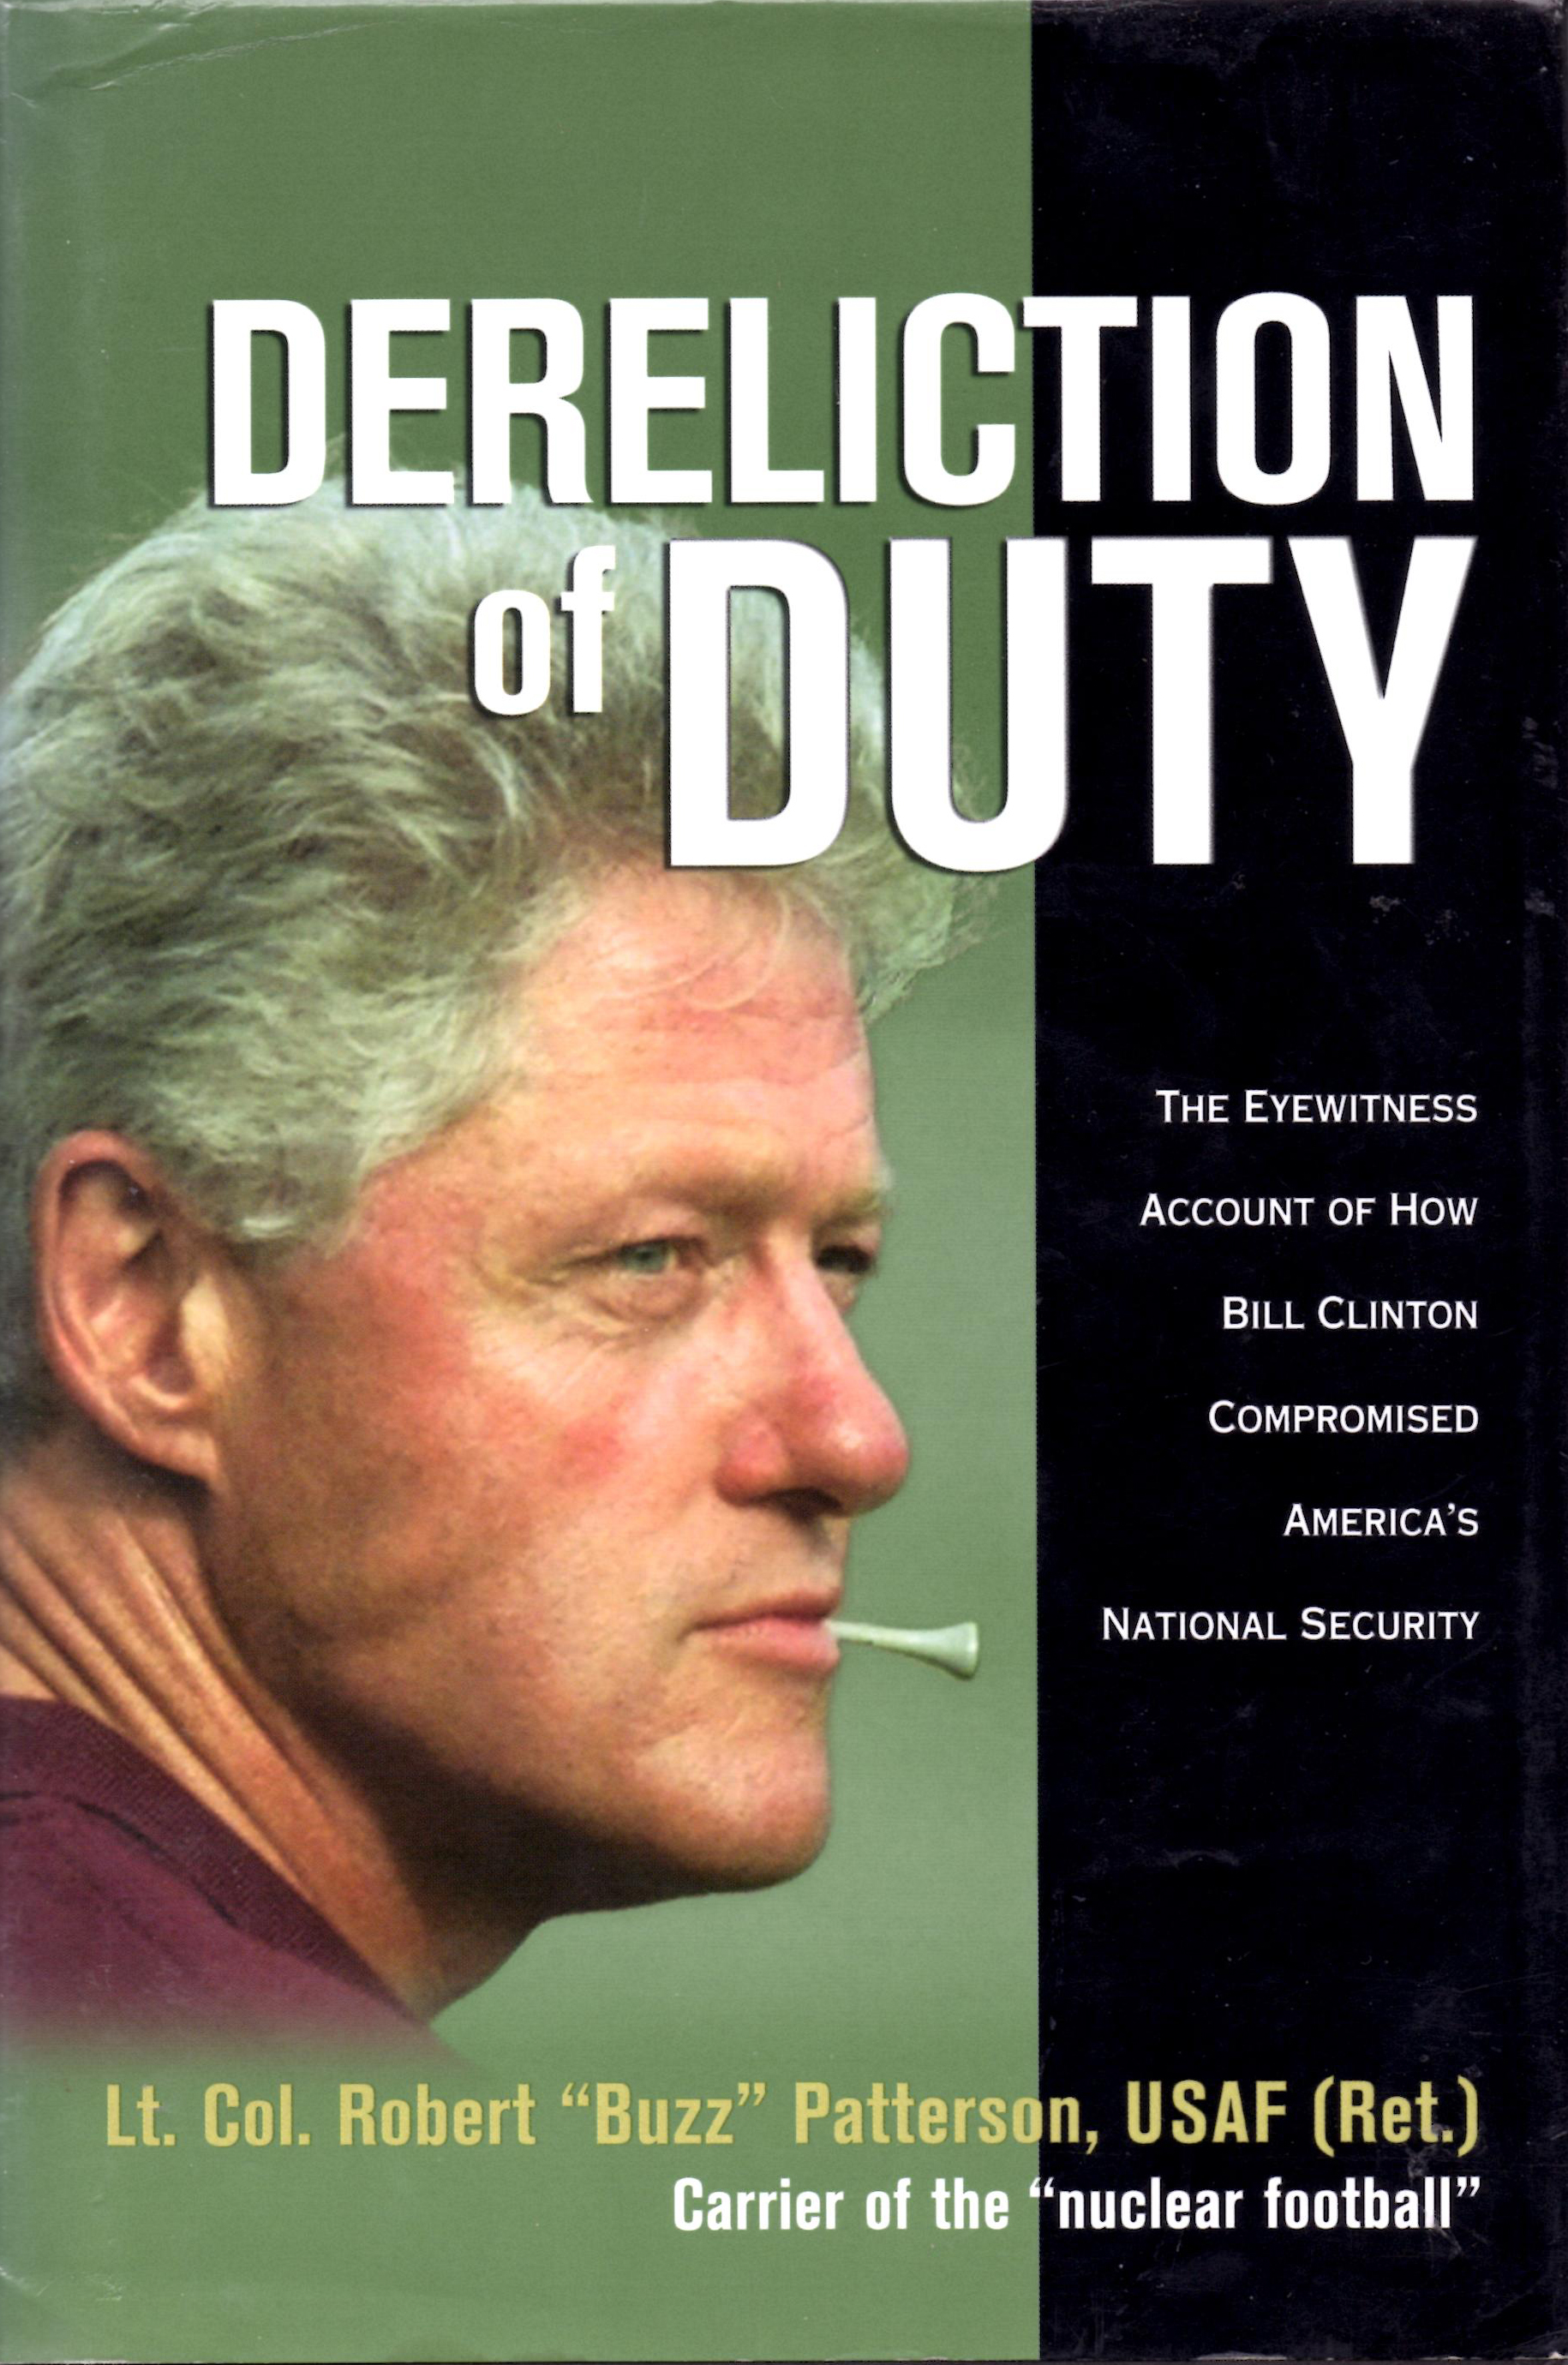 Image for Dereliction of Duty The Eyewitness Account of How Bill Clinton Compromised America's National Security